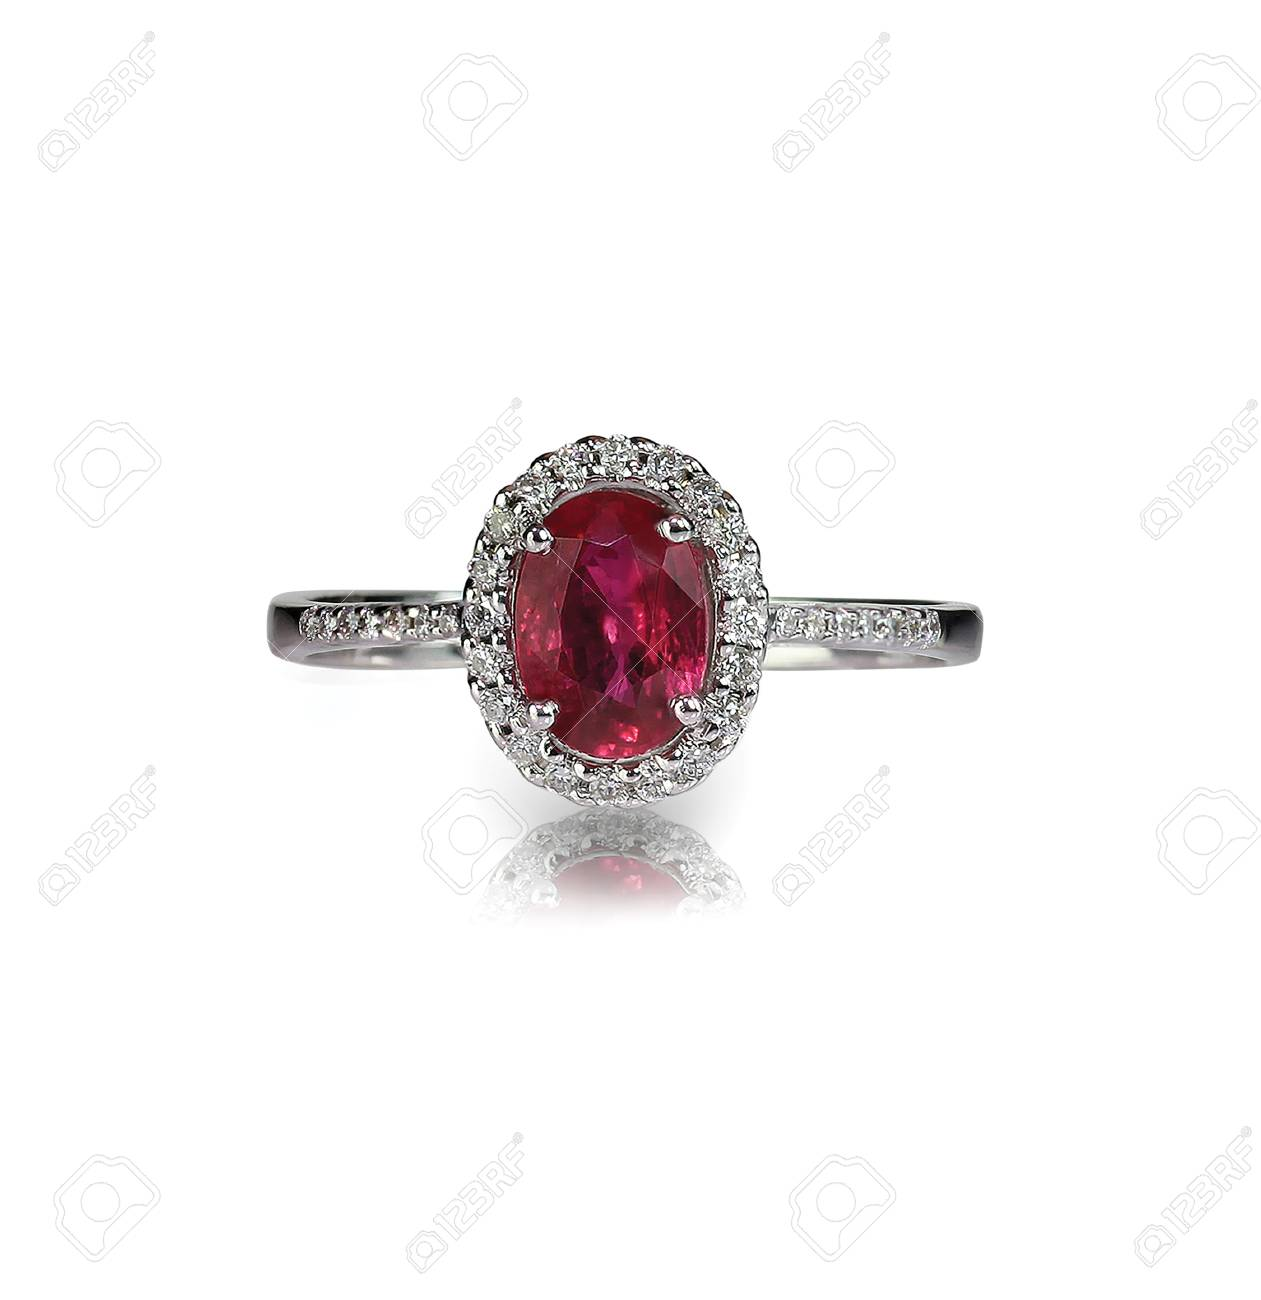 Ruby Center Stone Ring isolated on white - 107735878